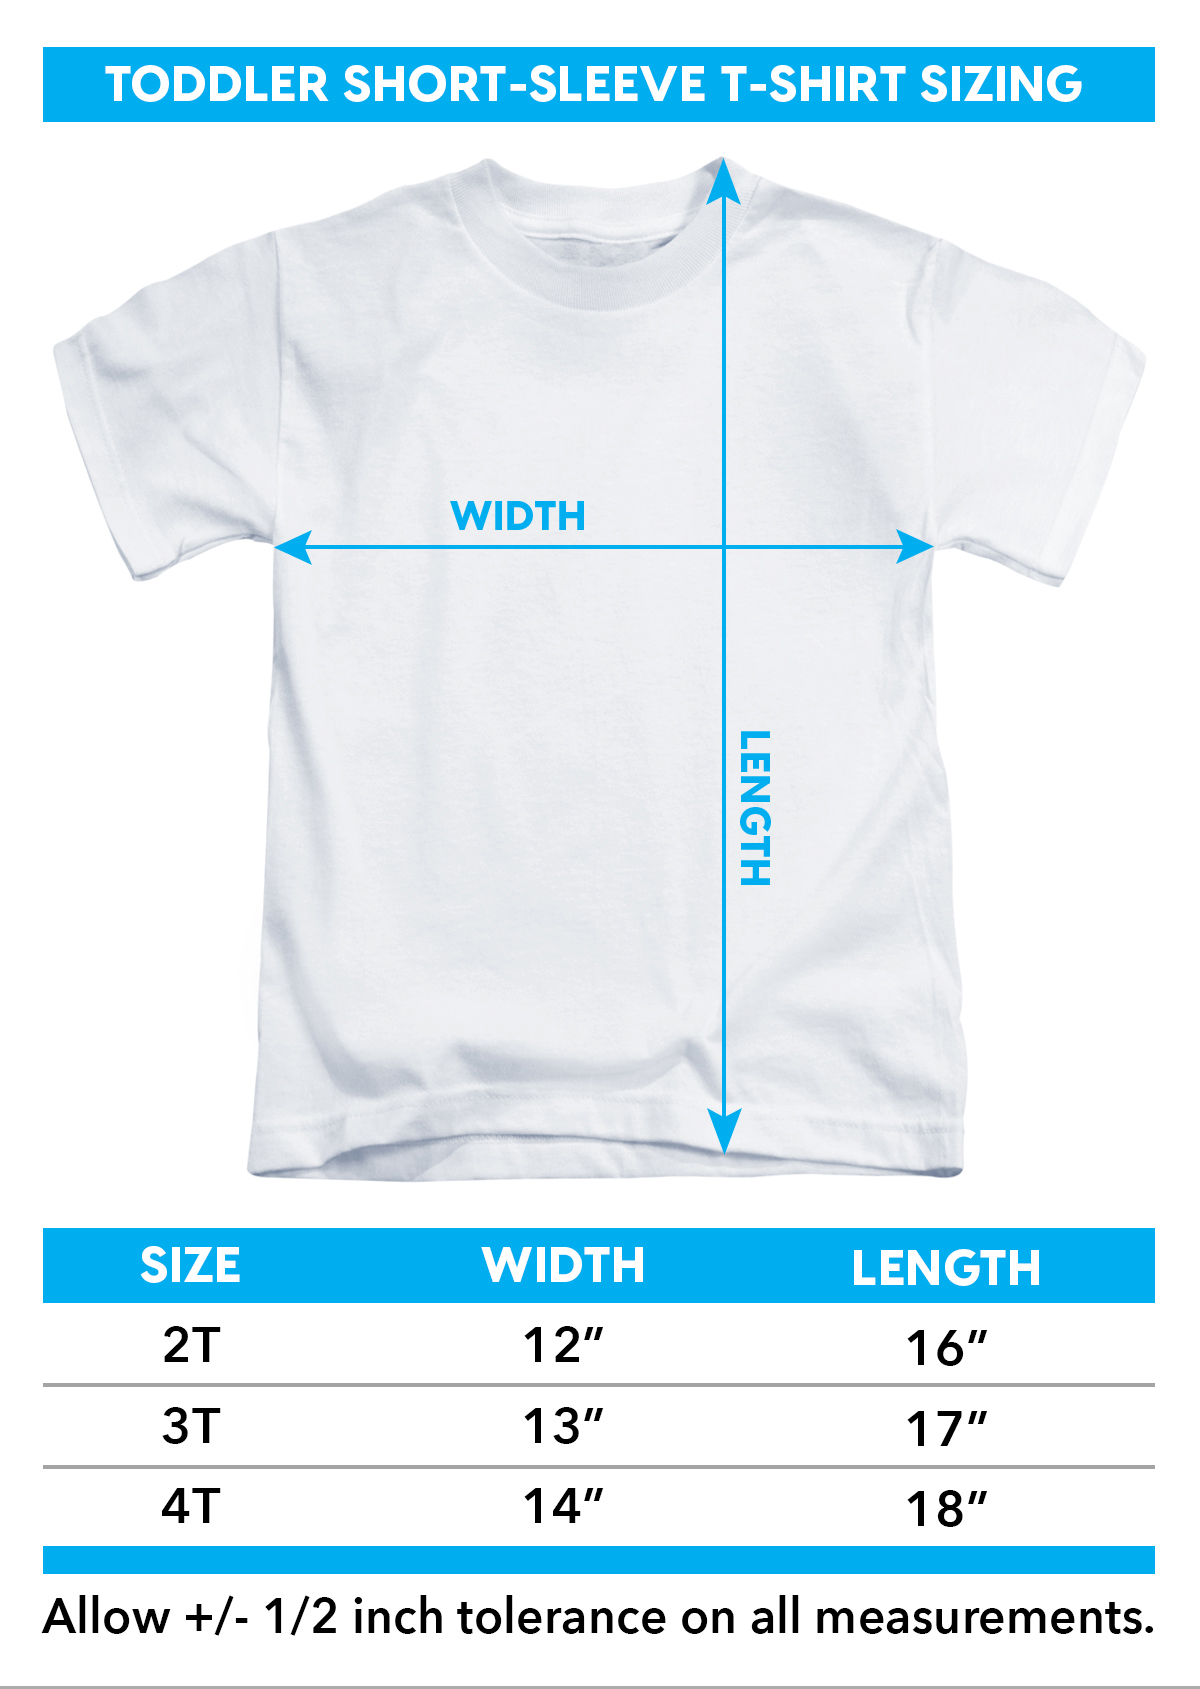 Sizing Chart for Hagar The Horrible Toddler T-Shirt - Pretty